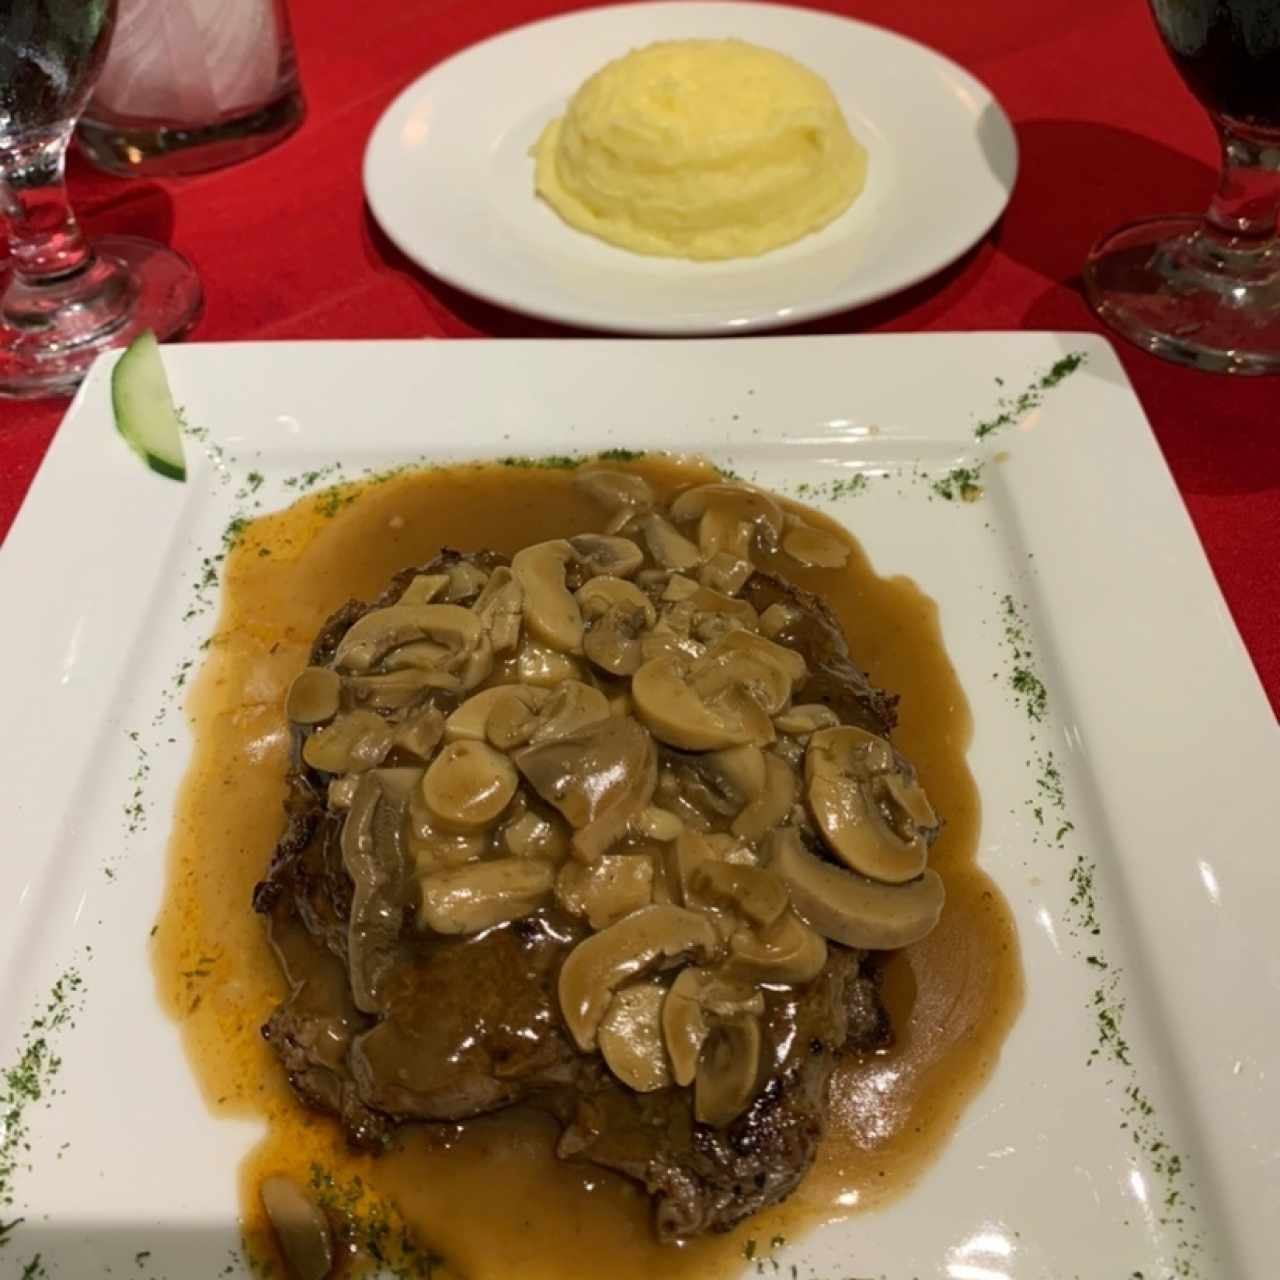 Filet Mignon con puré de papas